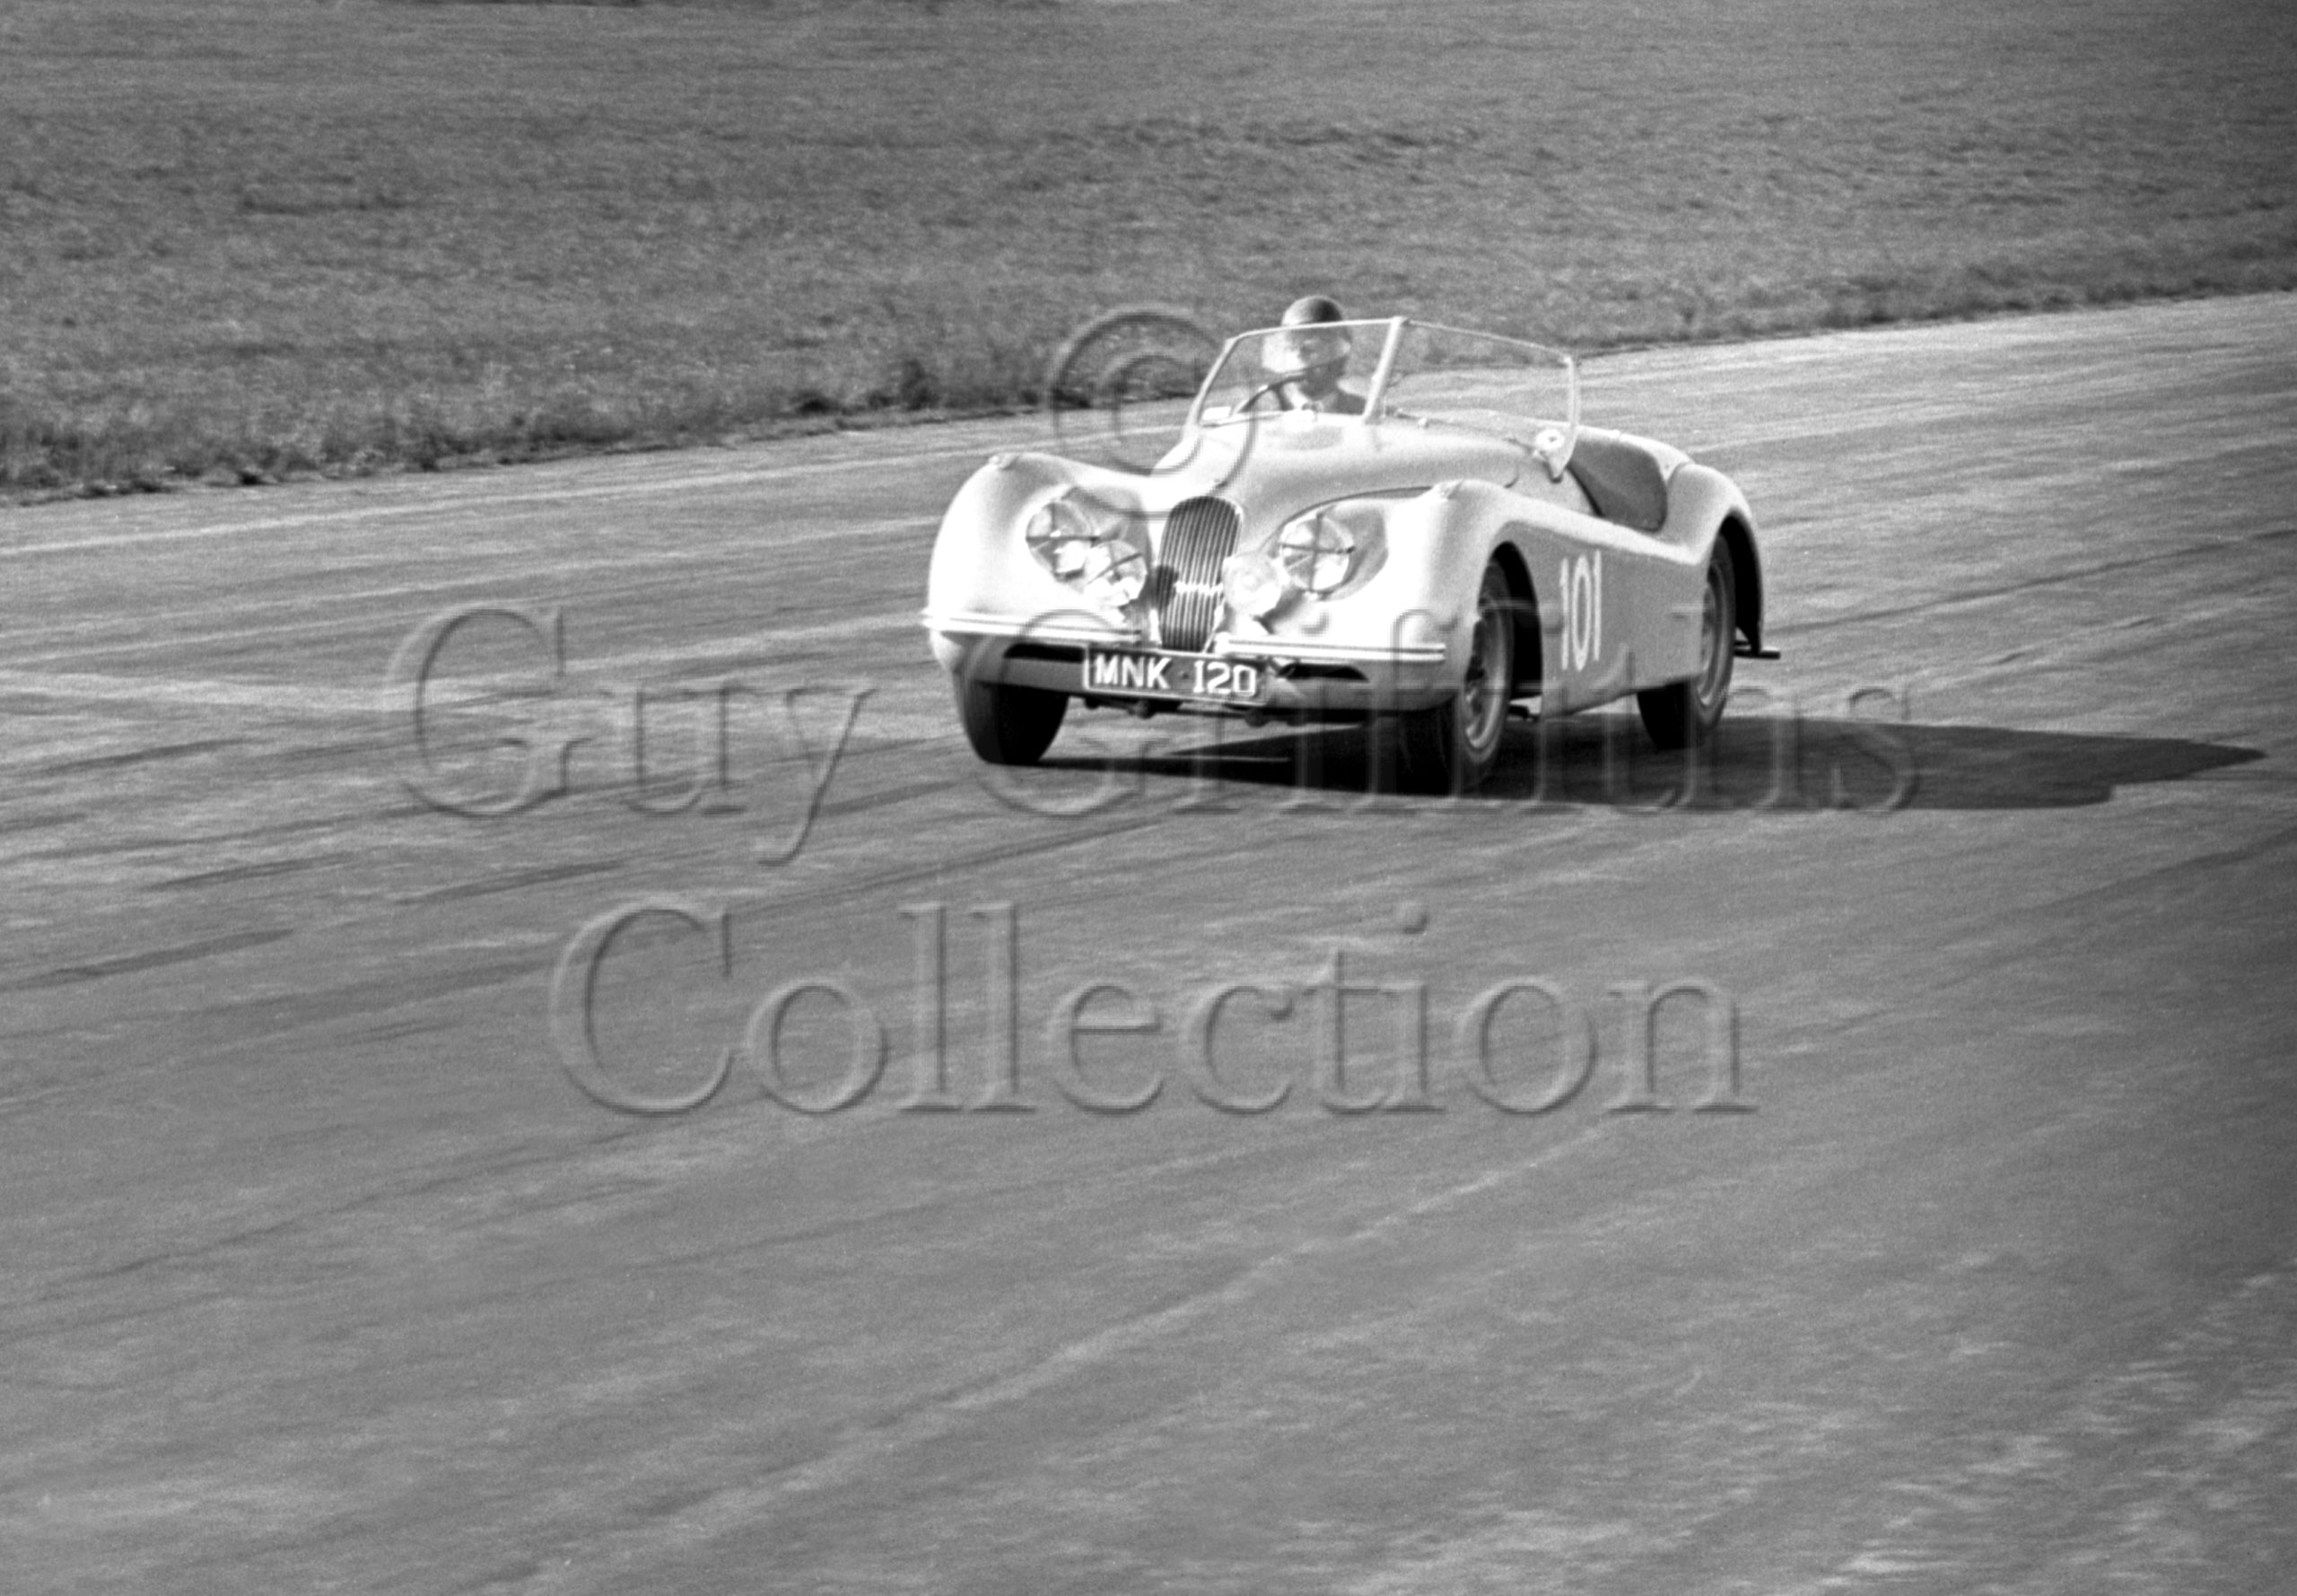 44-893–D-Russell–Jaguar-MNK120–Silverstone–02-06-1951.jpg - Guy Griffiths Collection